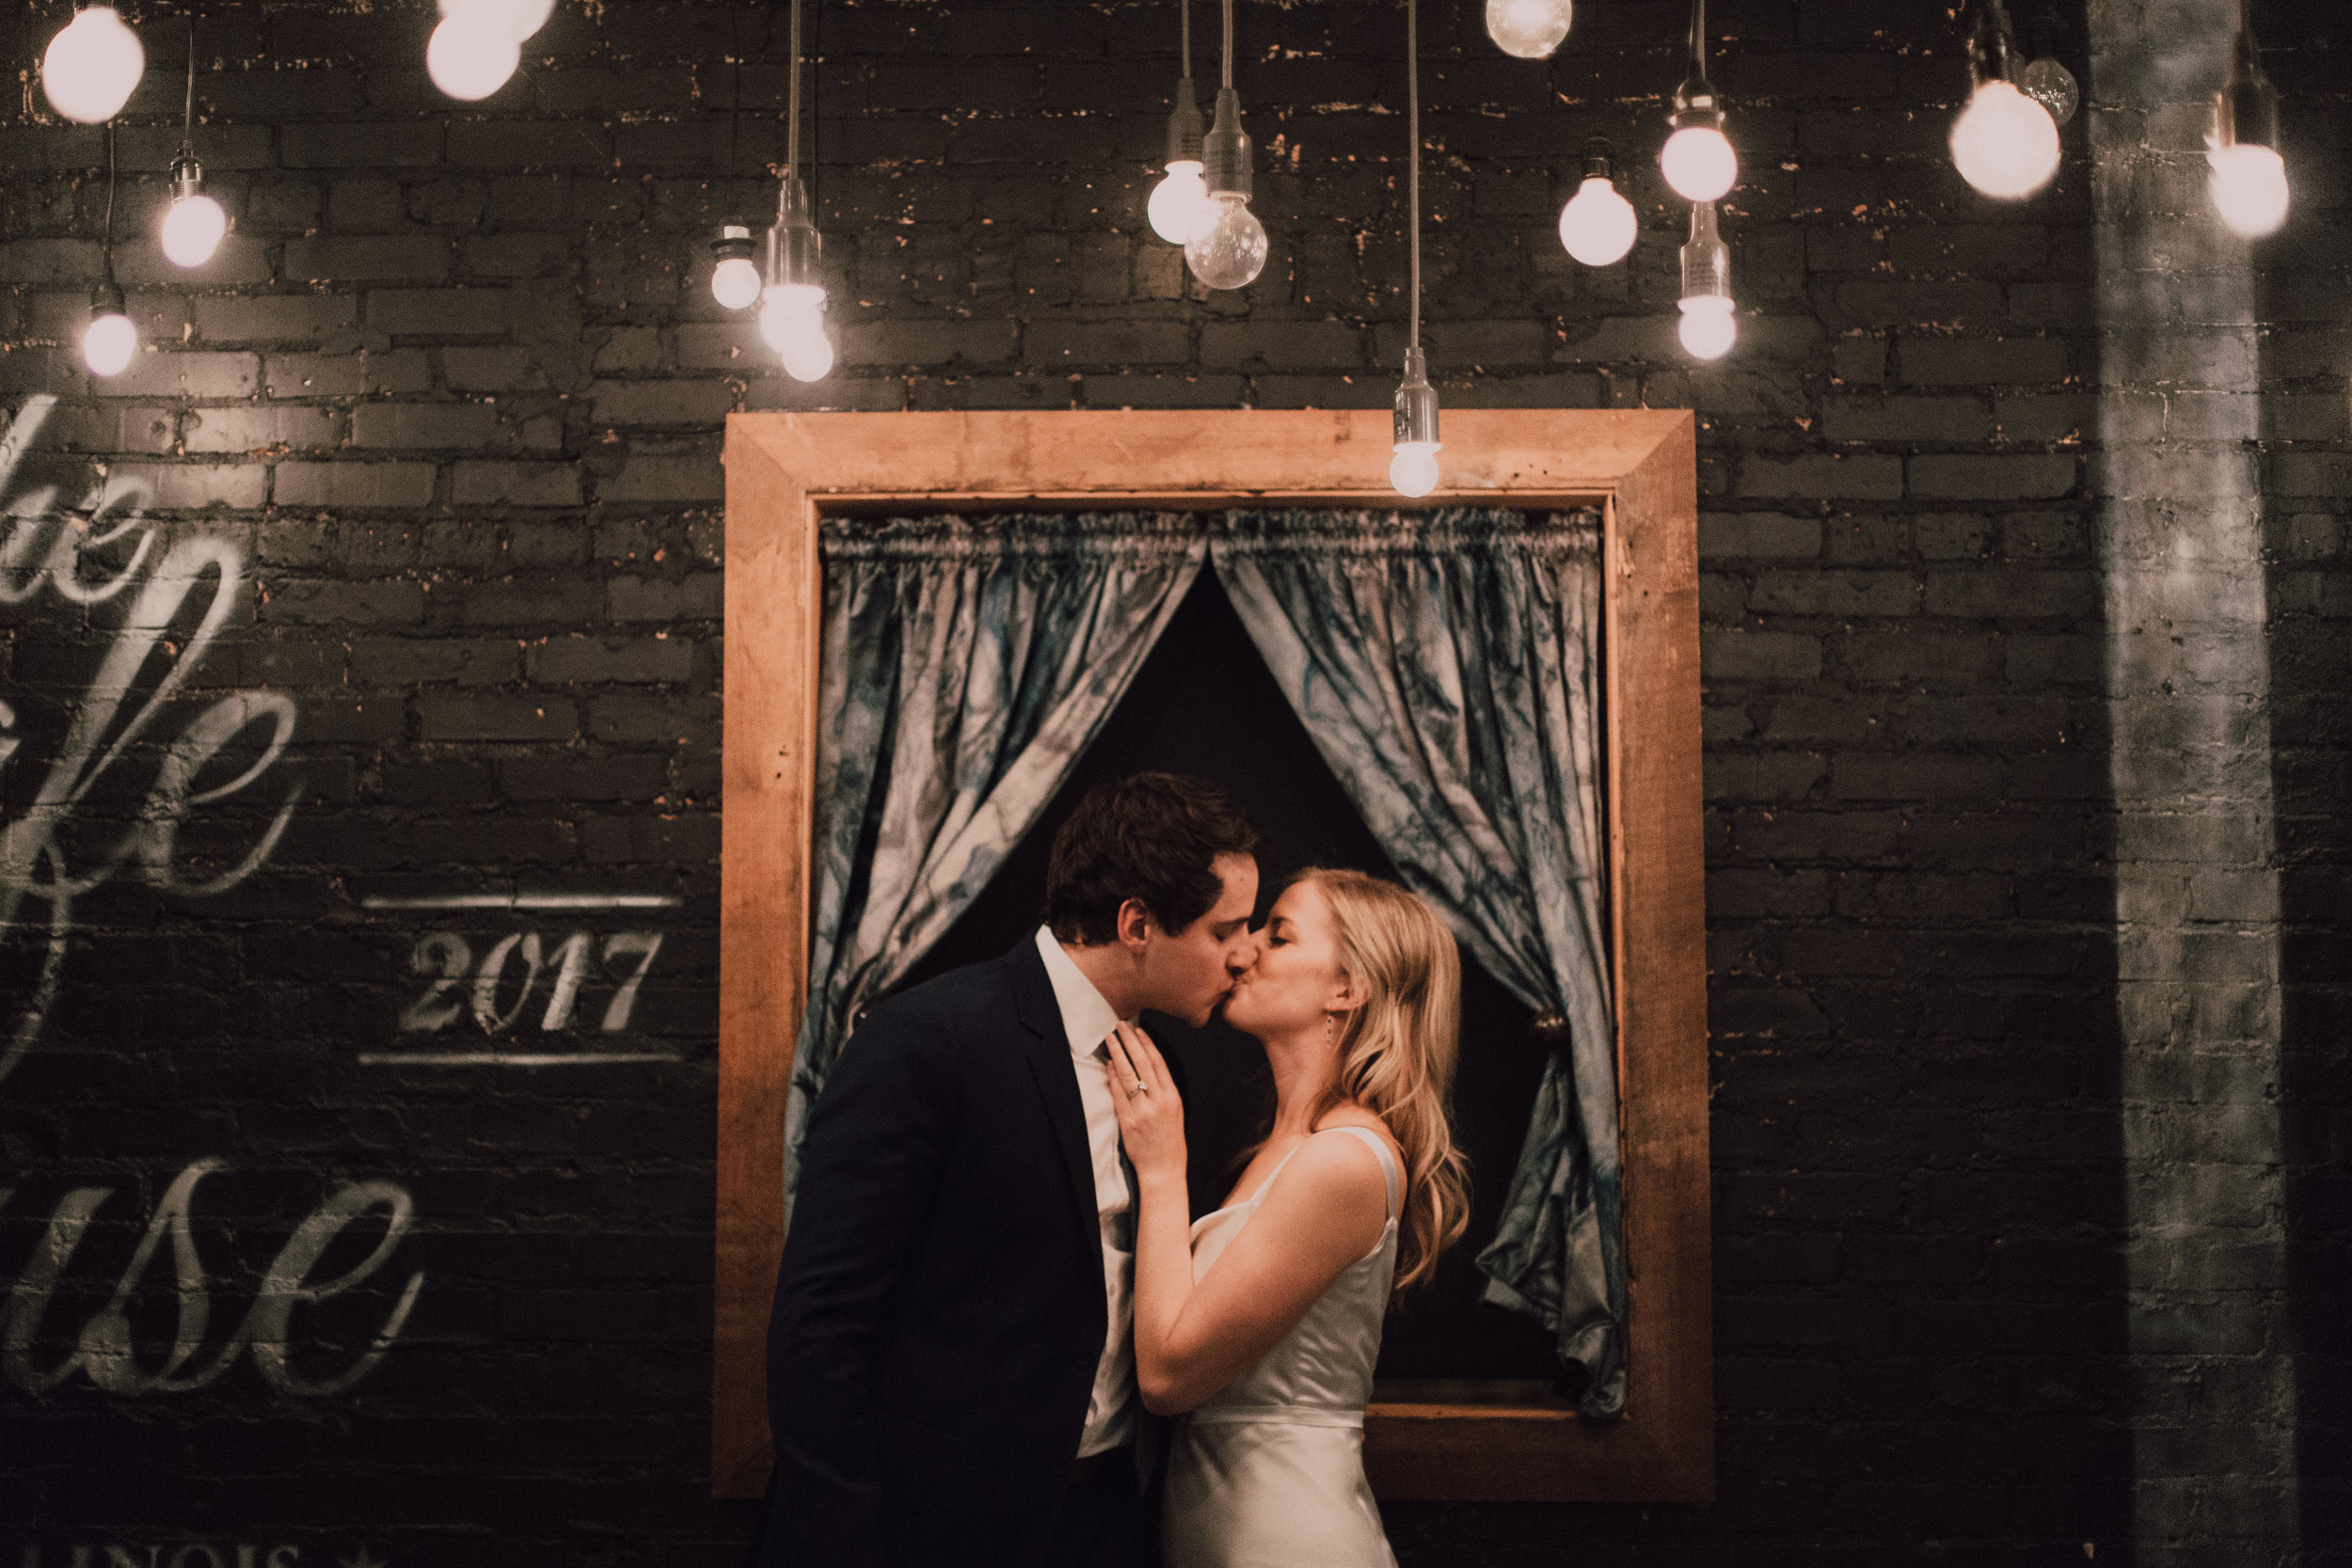 Whimsical Chicago Loft Wedding - Venue: The JoineryHair/Makeup: Kayla Consolo at Deco AdamoFlowers: Vale of EnnaDress: Julia Needleman Custom CoutureLighting: Atmosphere Events GroupDJ: Toast and JamCatering: Cocina Fusion